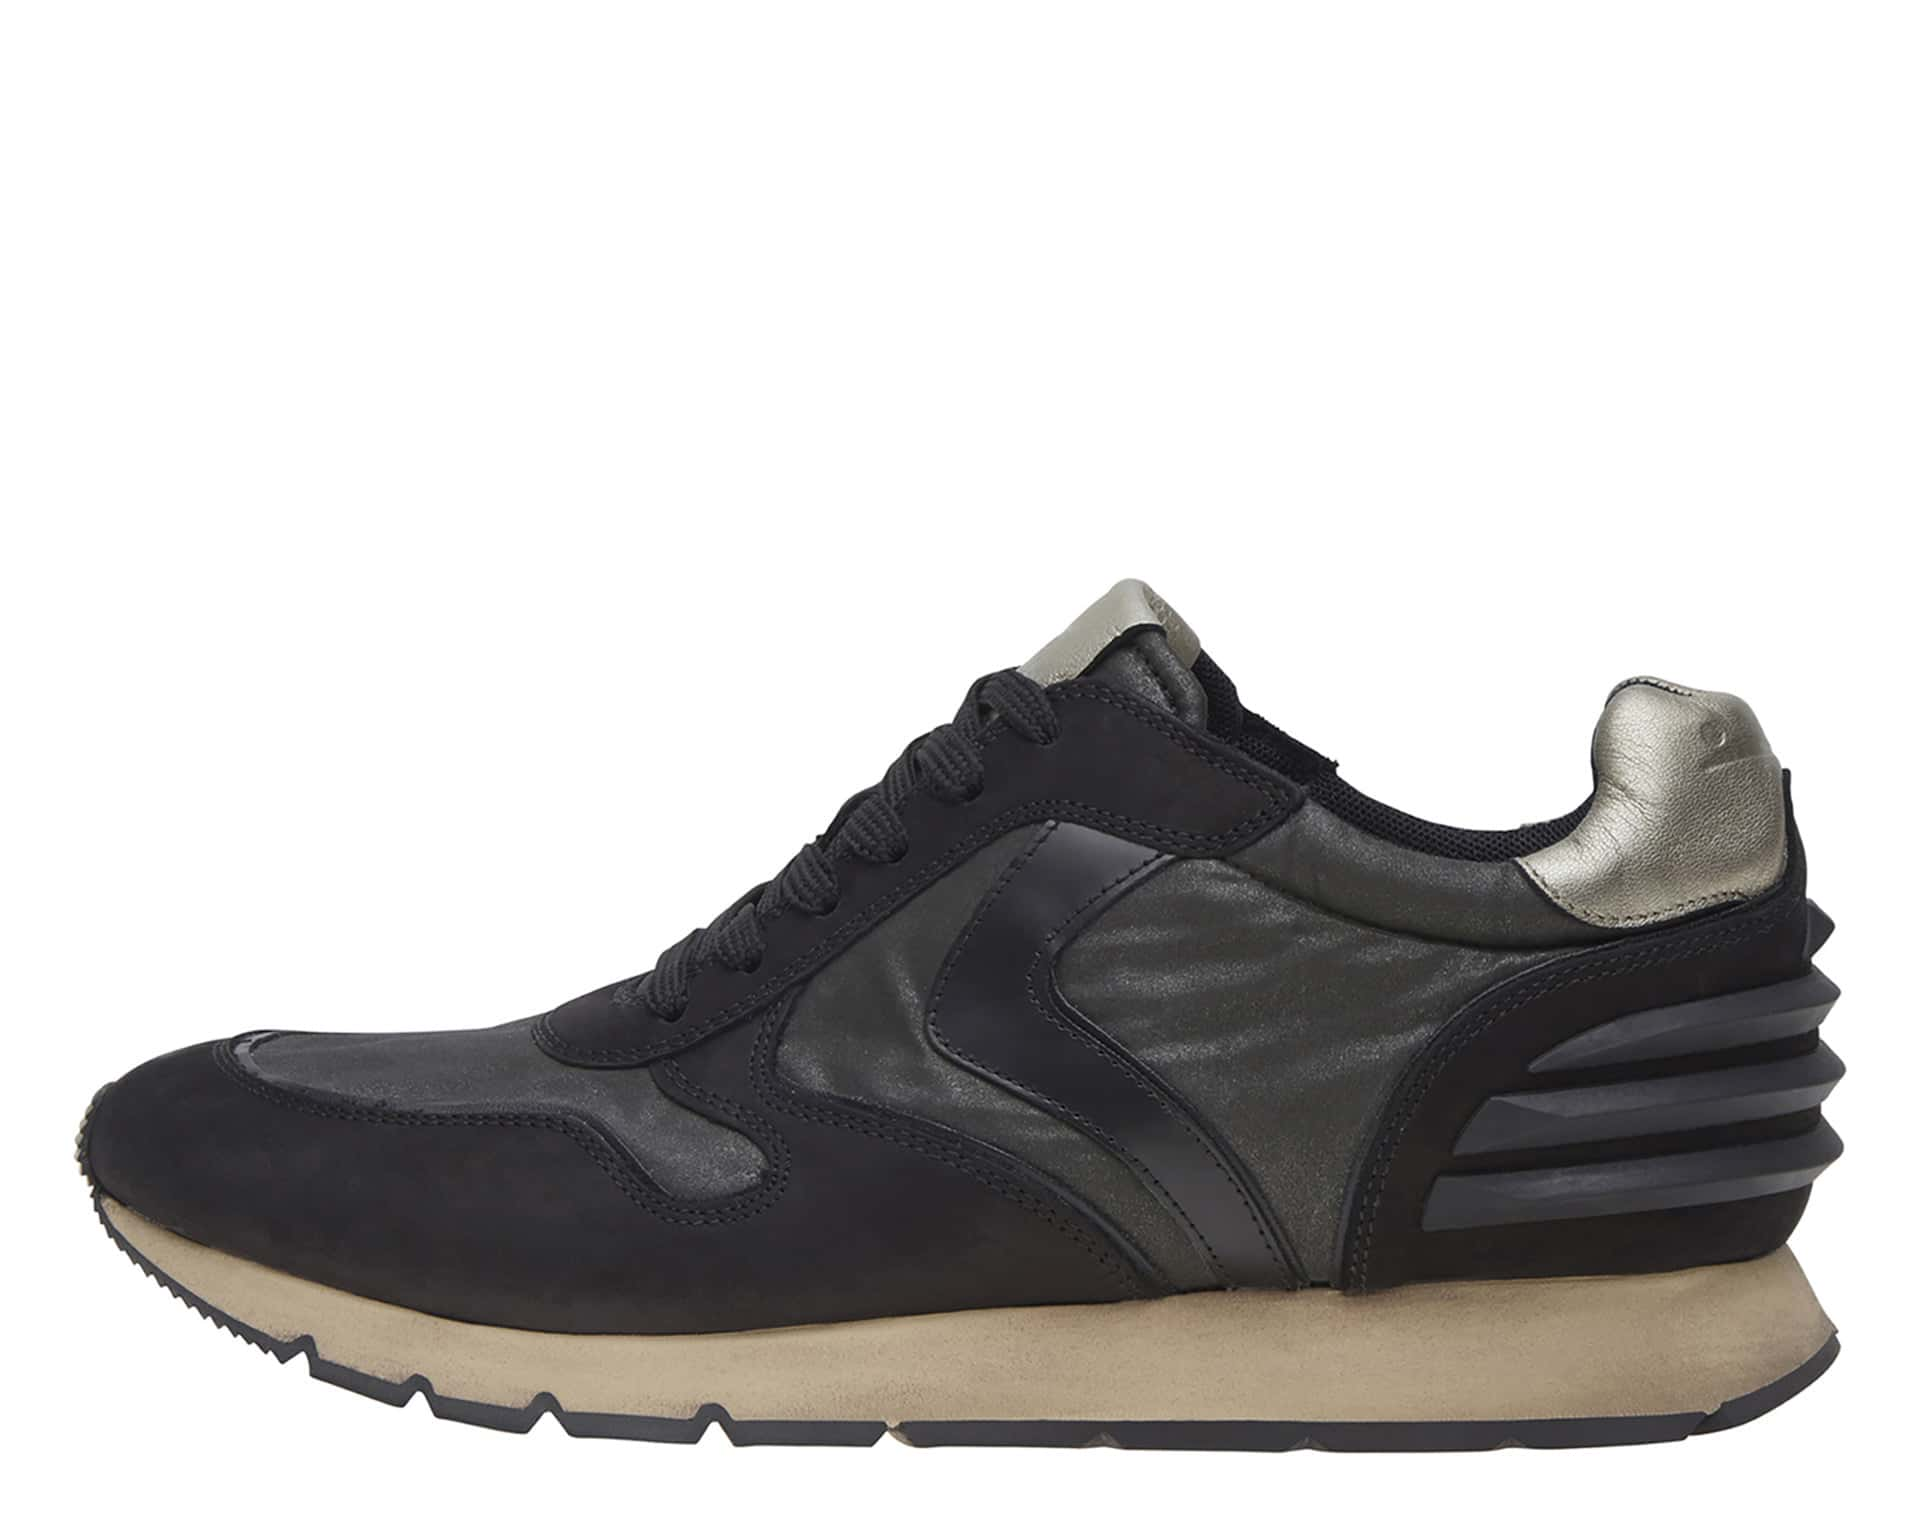 LIAM POWER - SNEAKERS IN PELLE E NYLON - NERO